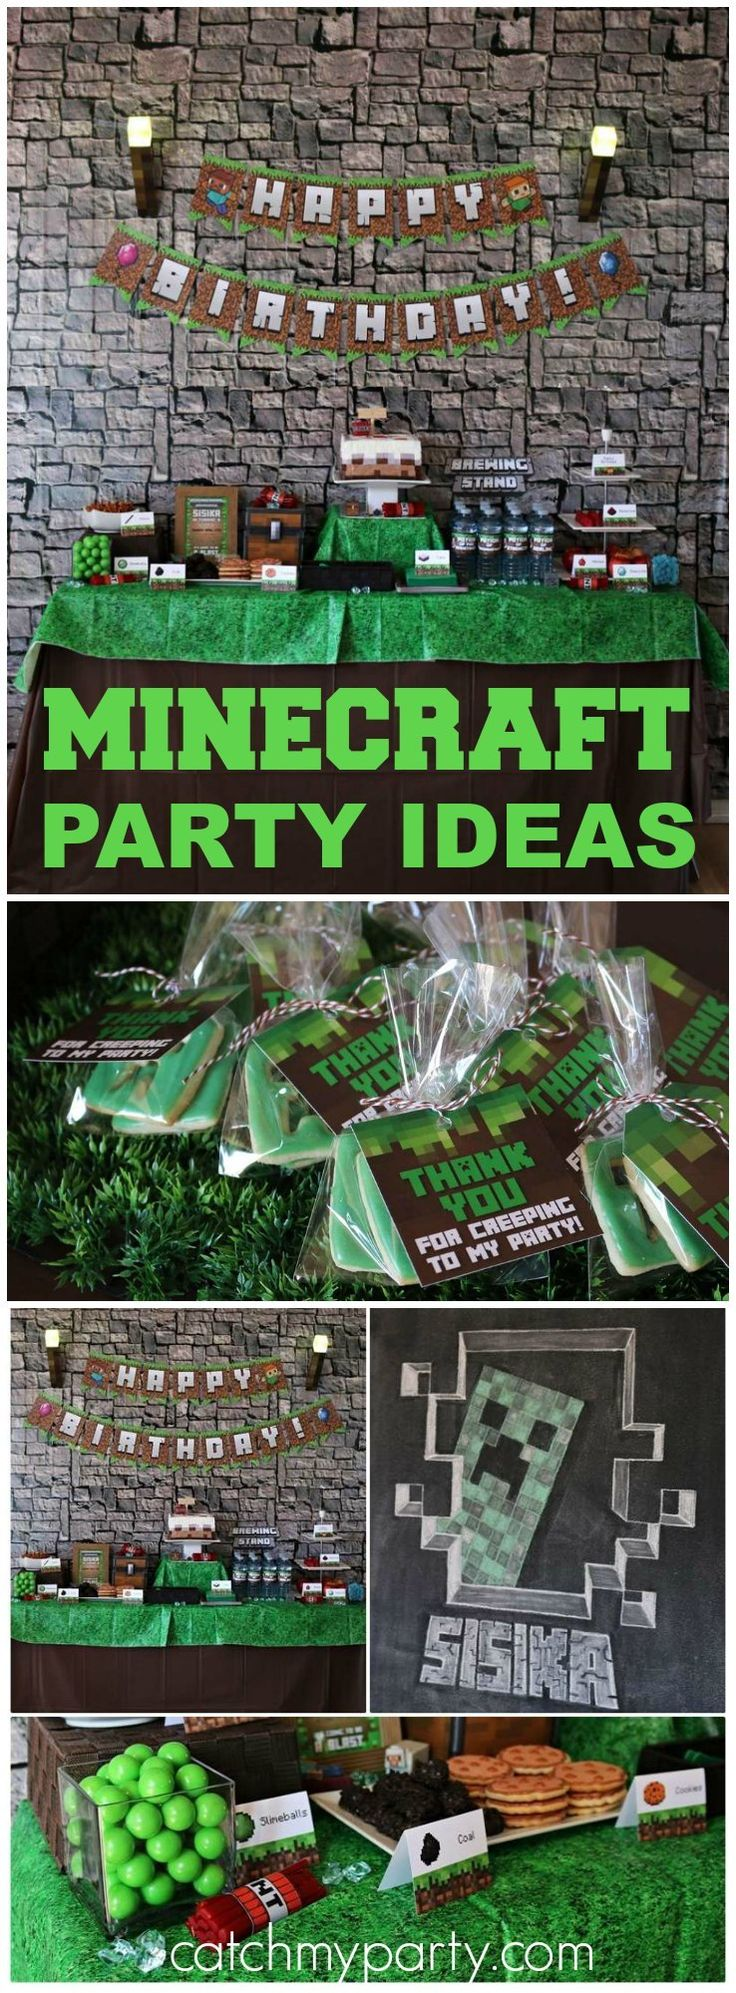 Check out this awesome Minecraft birthday party! See more party ideas at CatchMyParty.com!